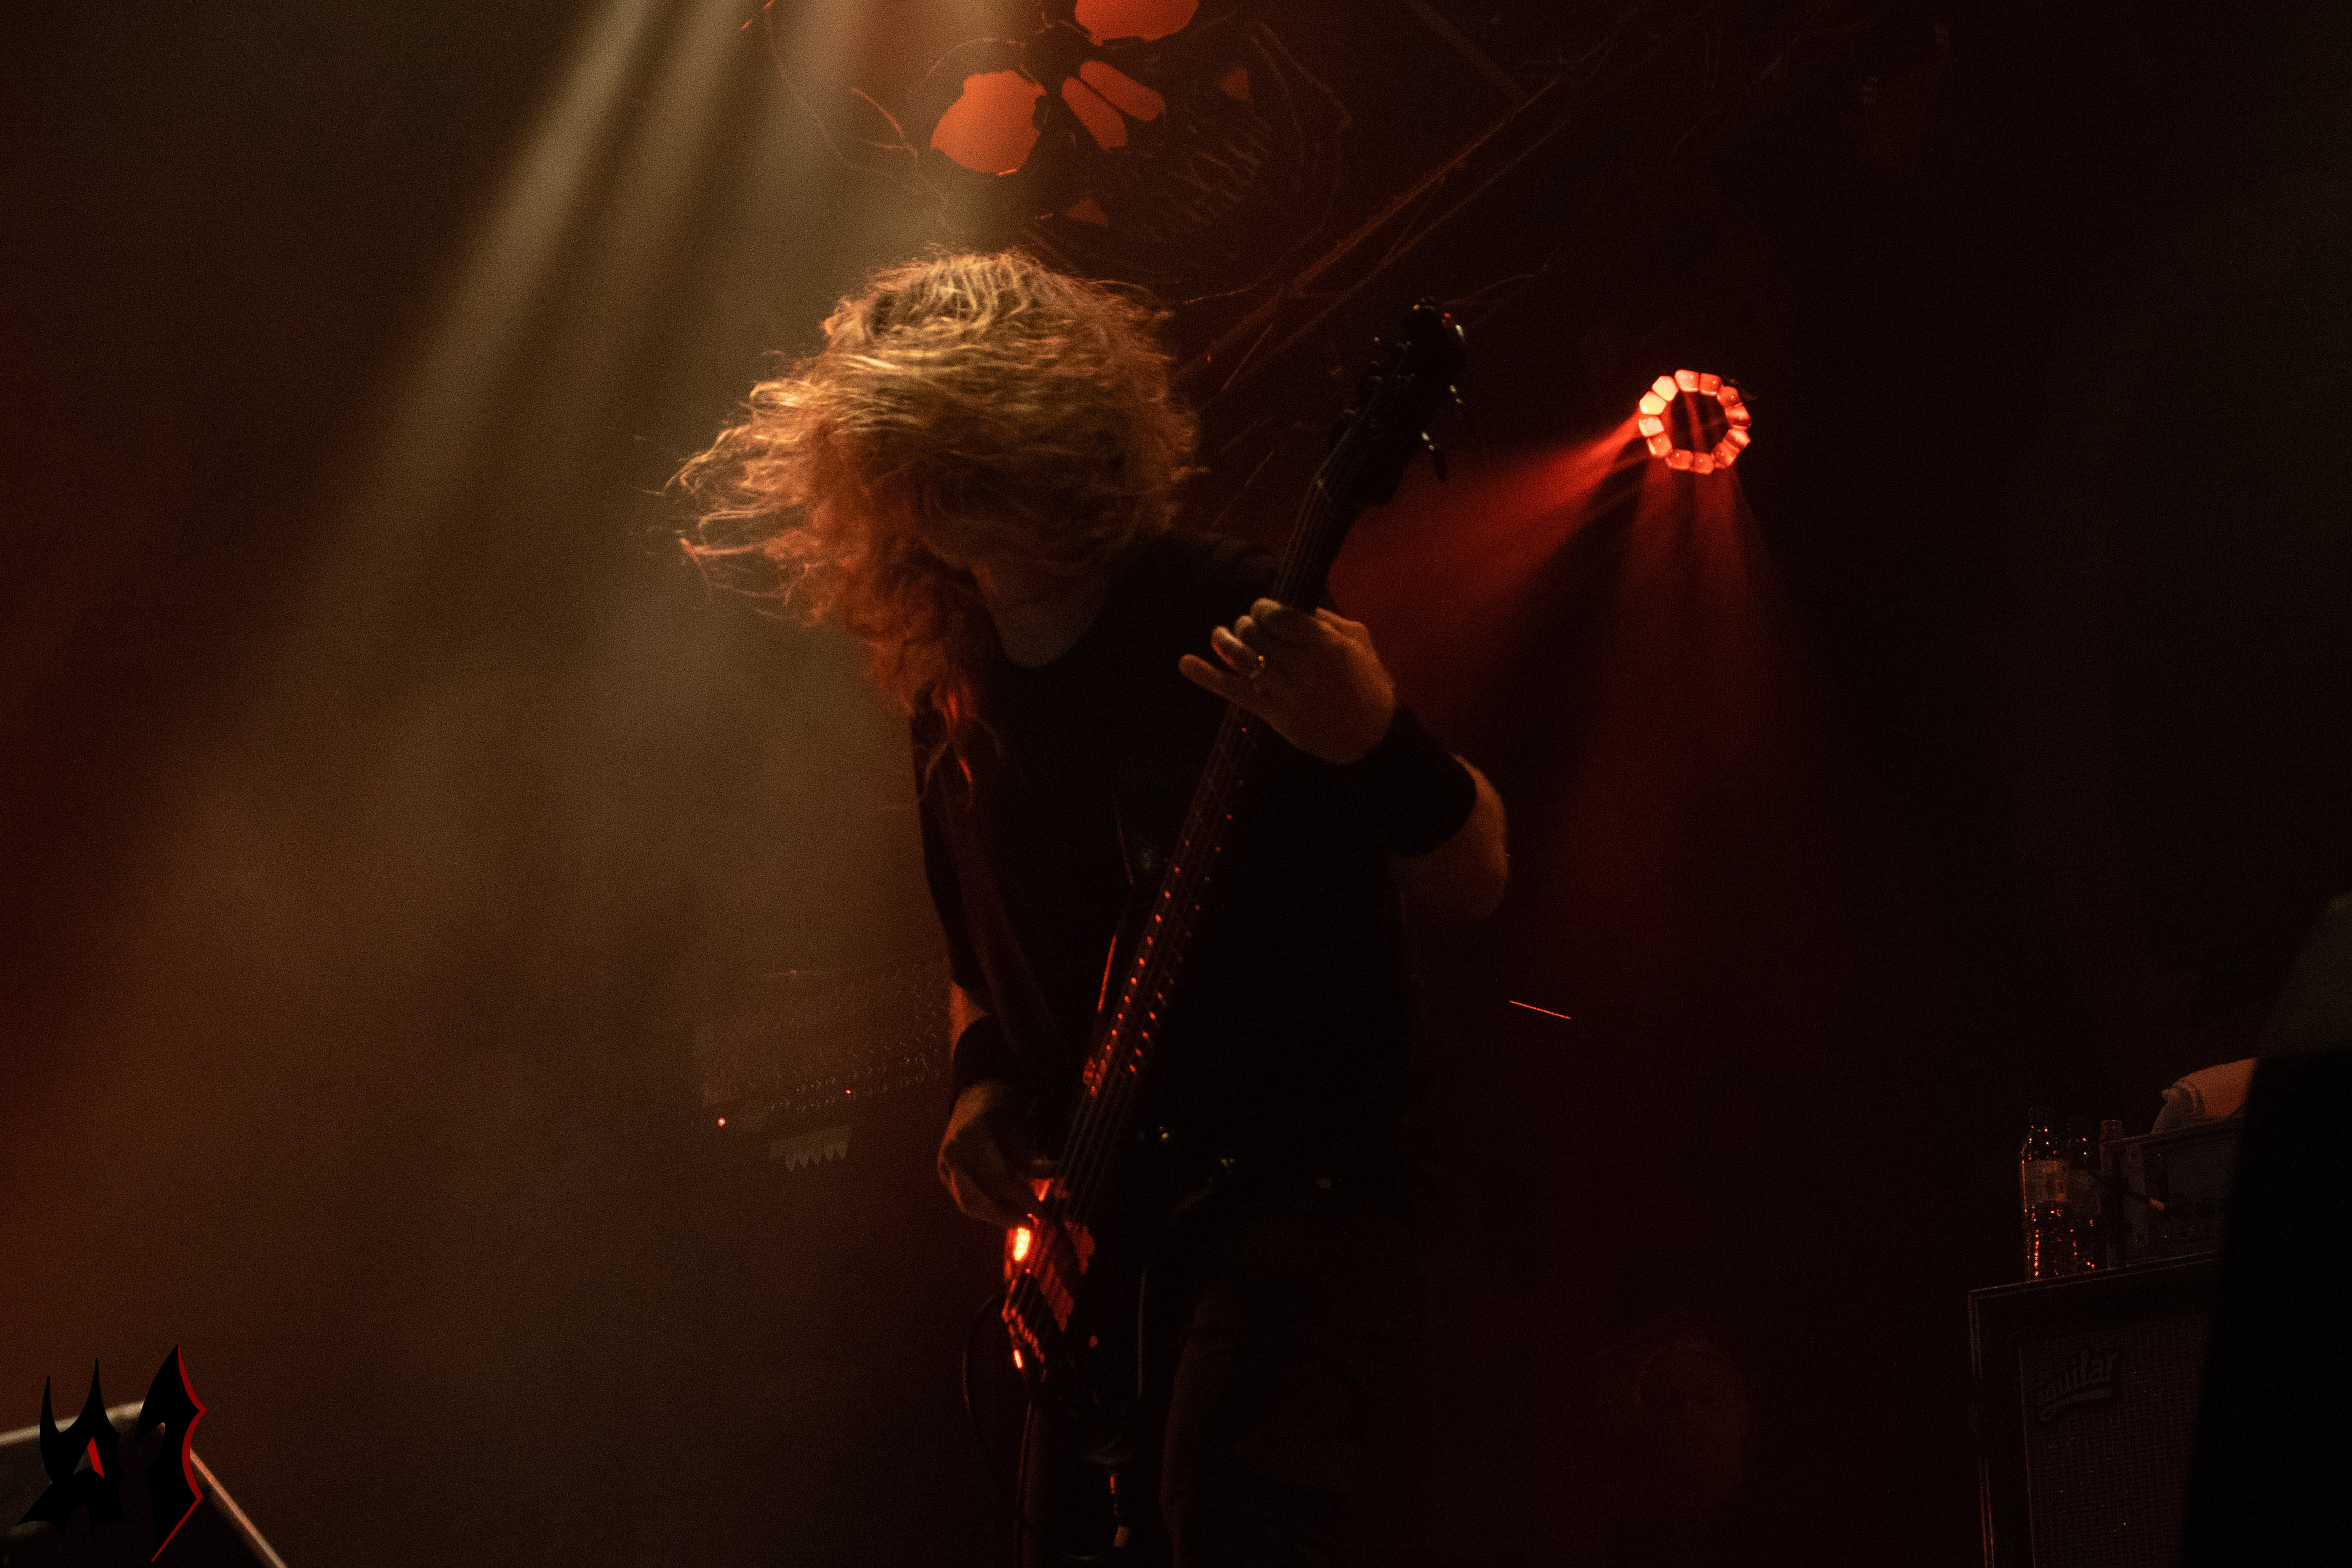 Hellfest - Cannibal Corpse - 18